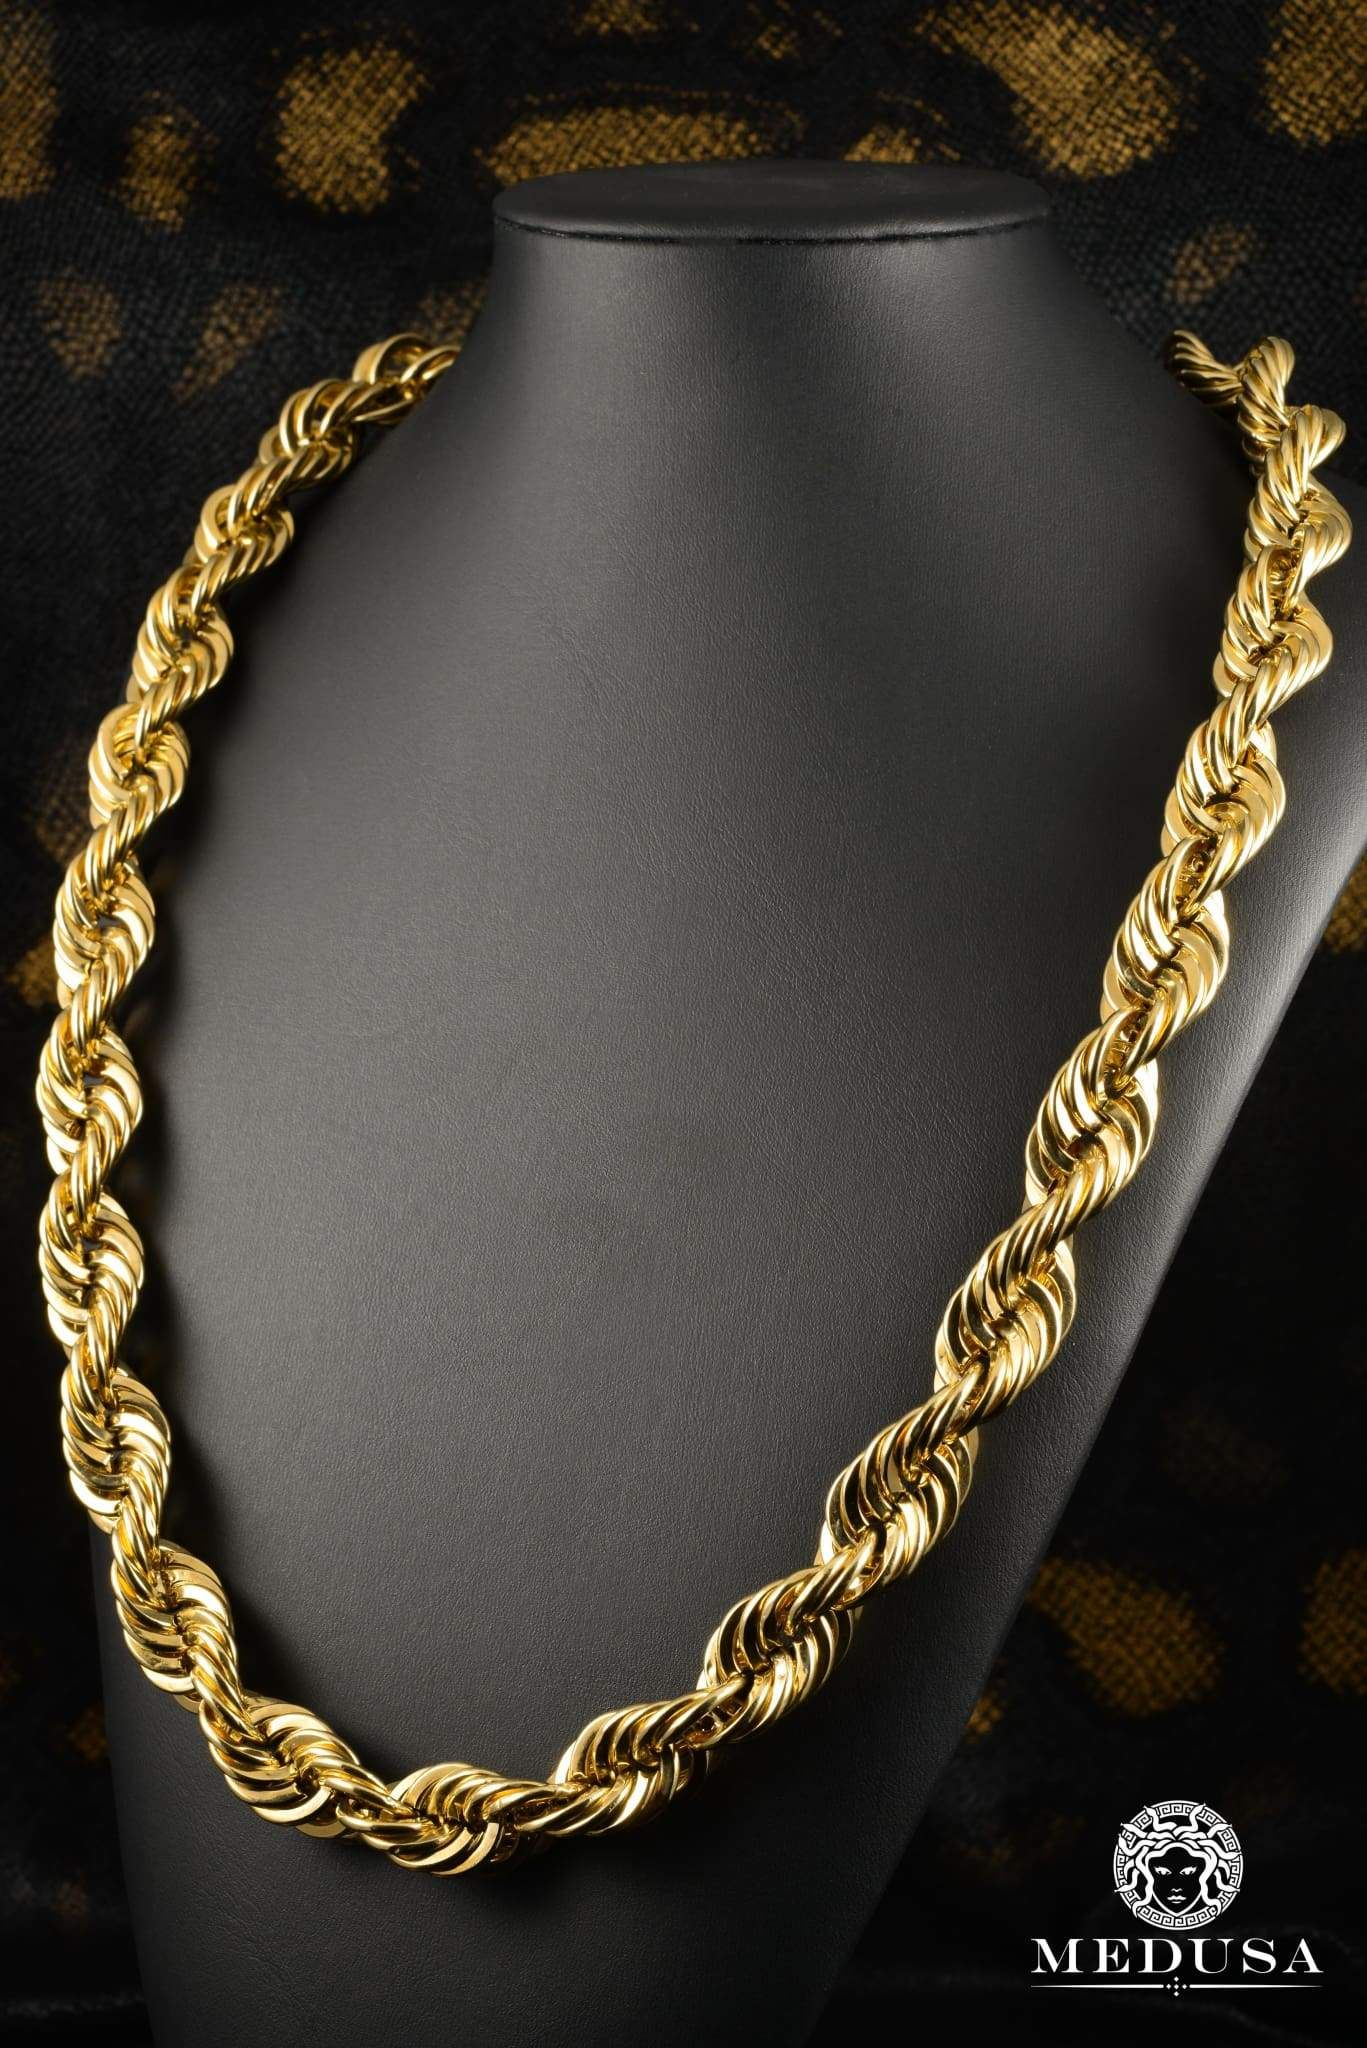 16mm Torsade Gold Chains For Men Gold Jewelry Fashion 18k Gold Chain